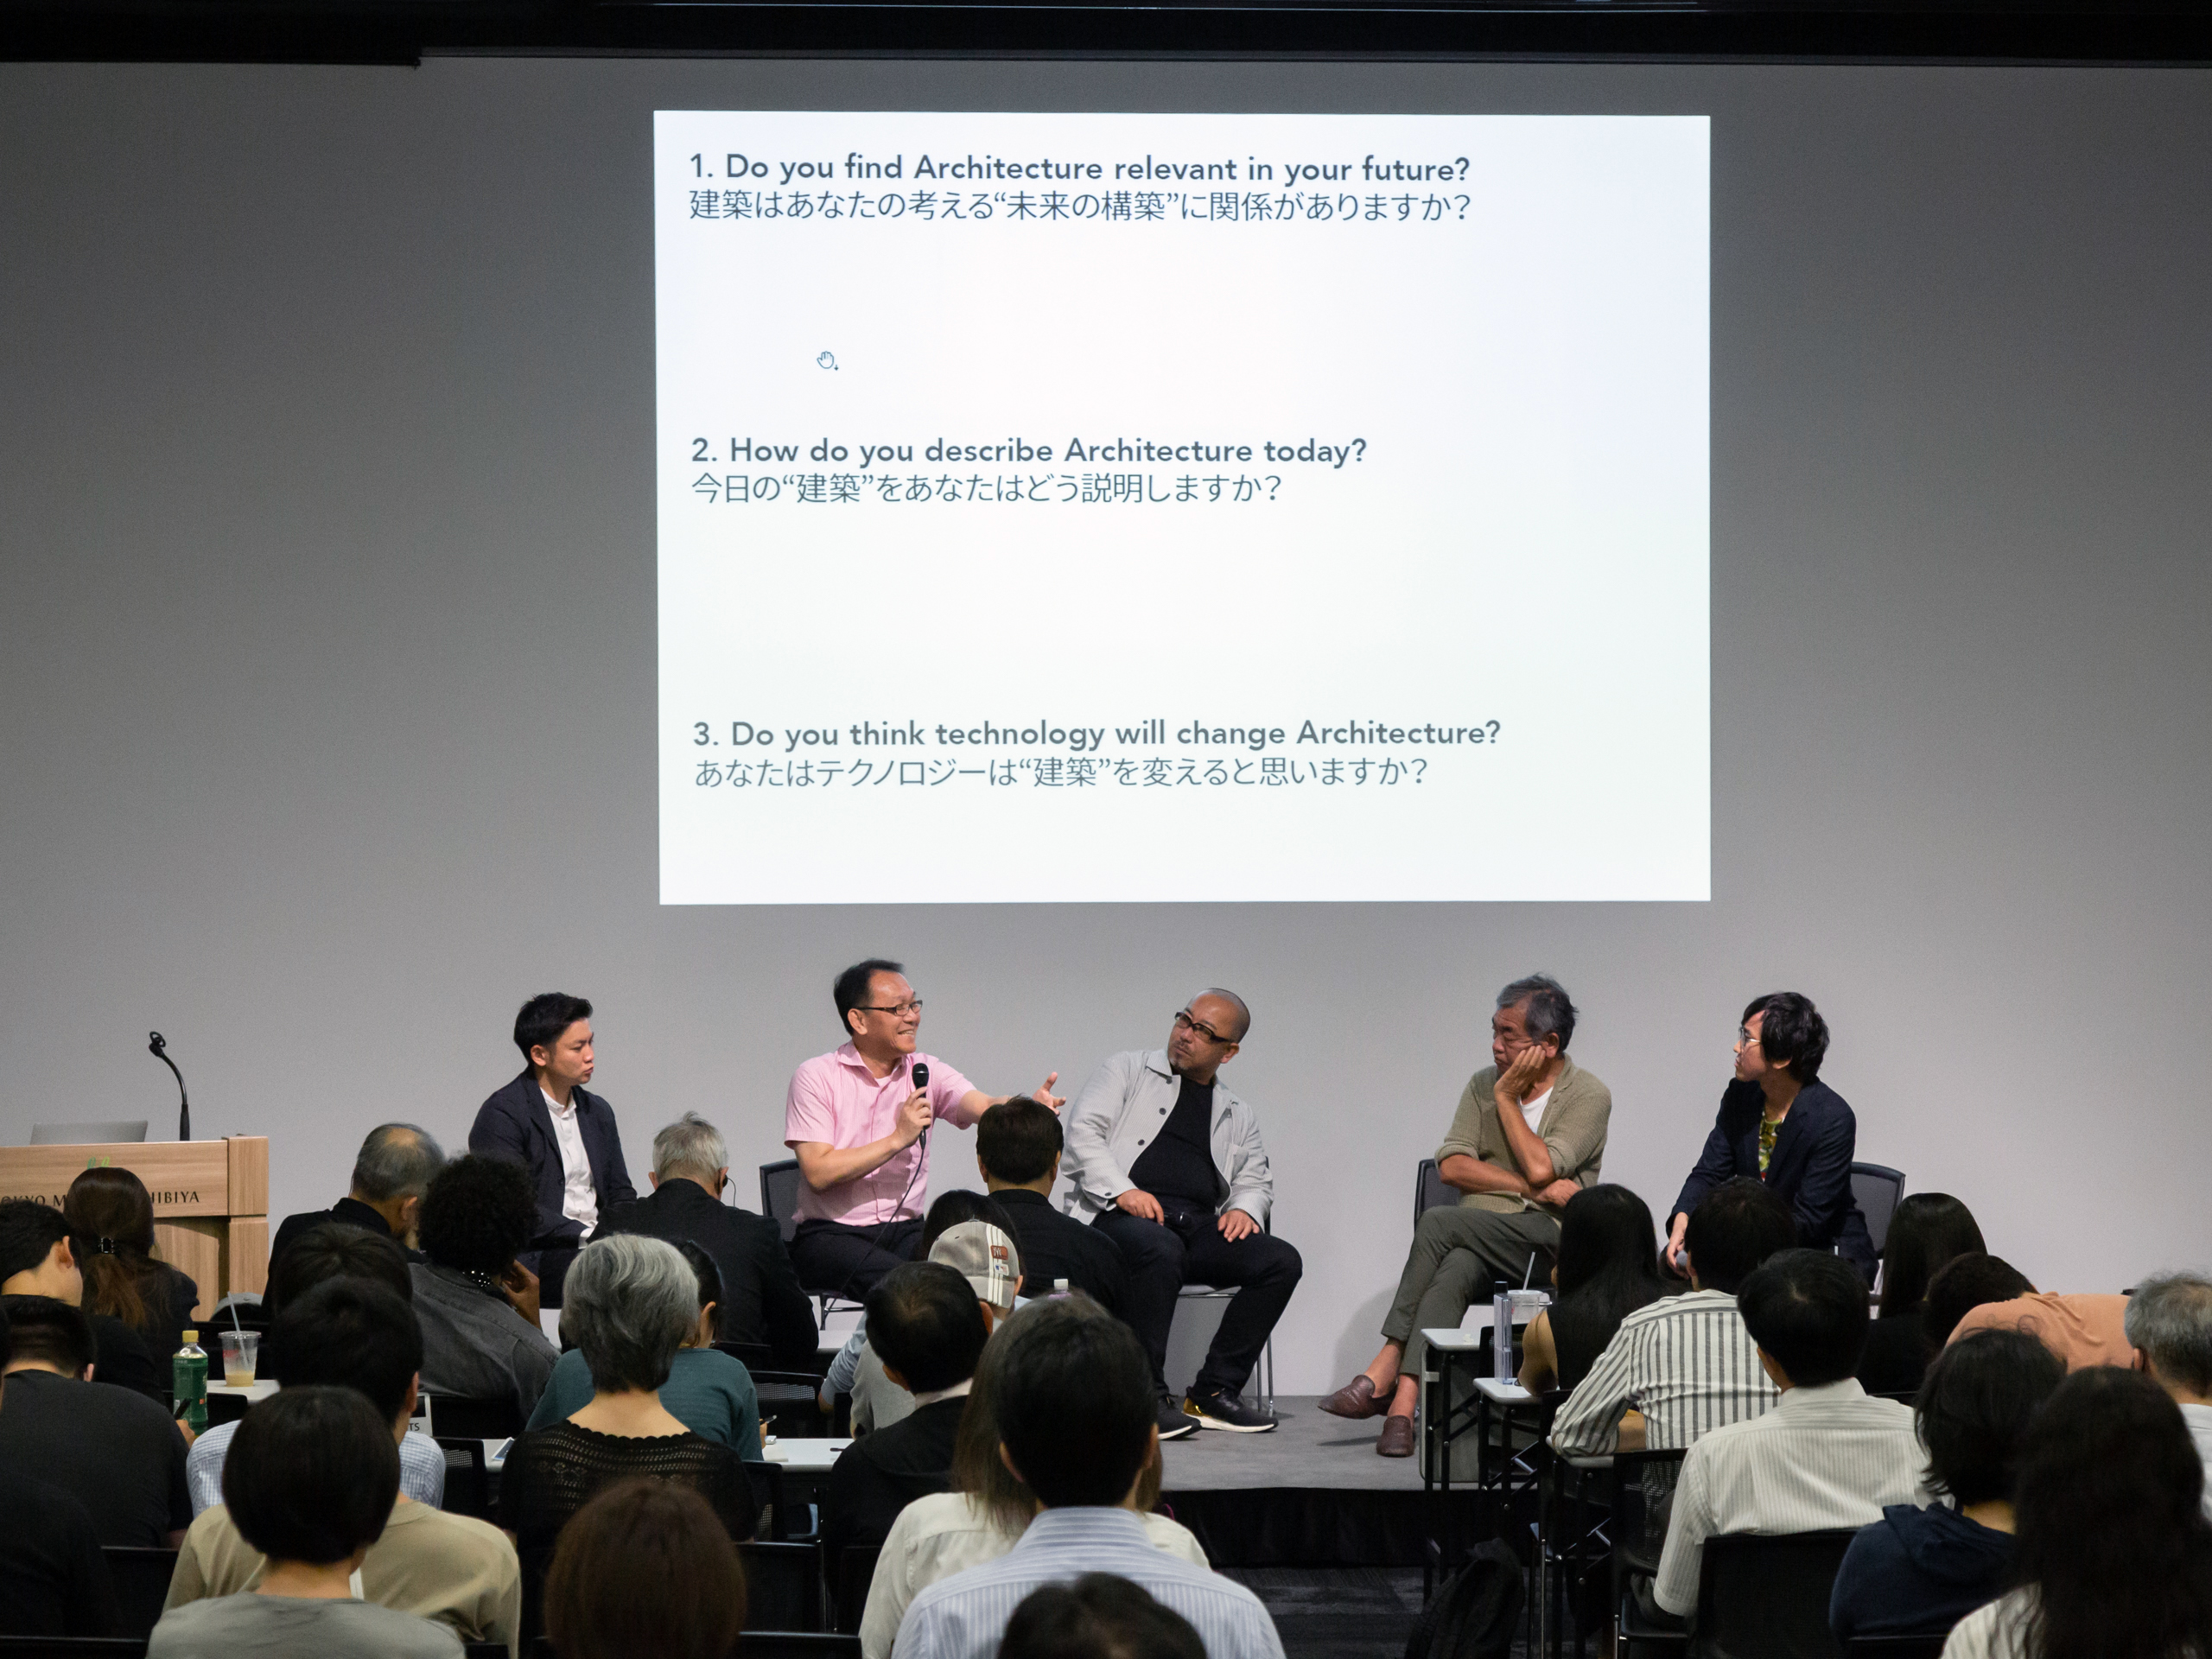 A panel of five people sitting in front of a screen with English and Japanese text